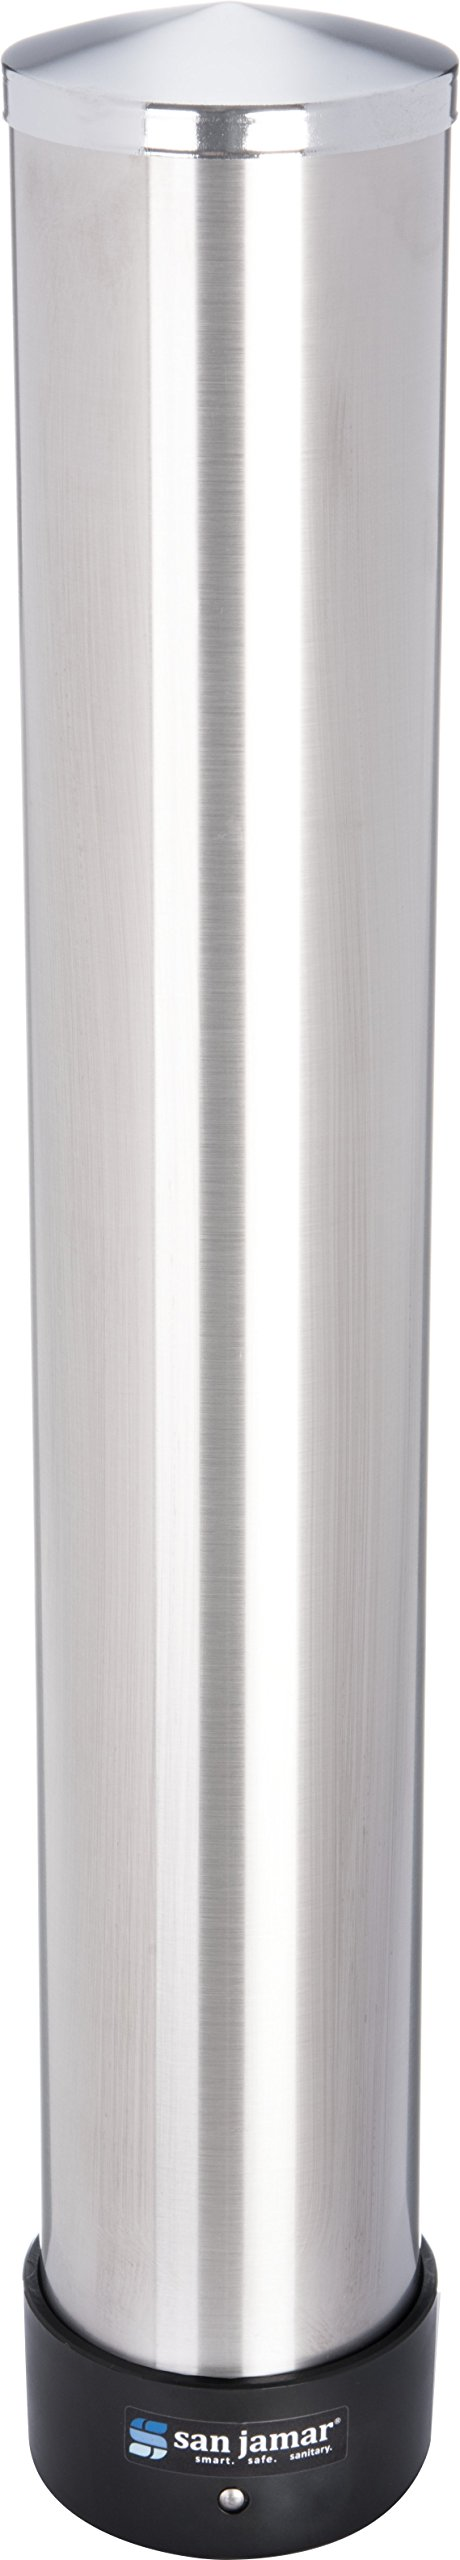 San Jamar C3200P Stainless Steel Pull Type Beverage Cup Dispenser, Fits 6oz to 10oz Cup Size, 2-7/32'' to 3-3/16'' Rim, 23-1/2'' Tube Length